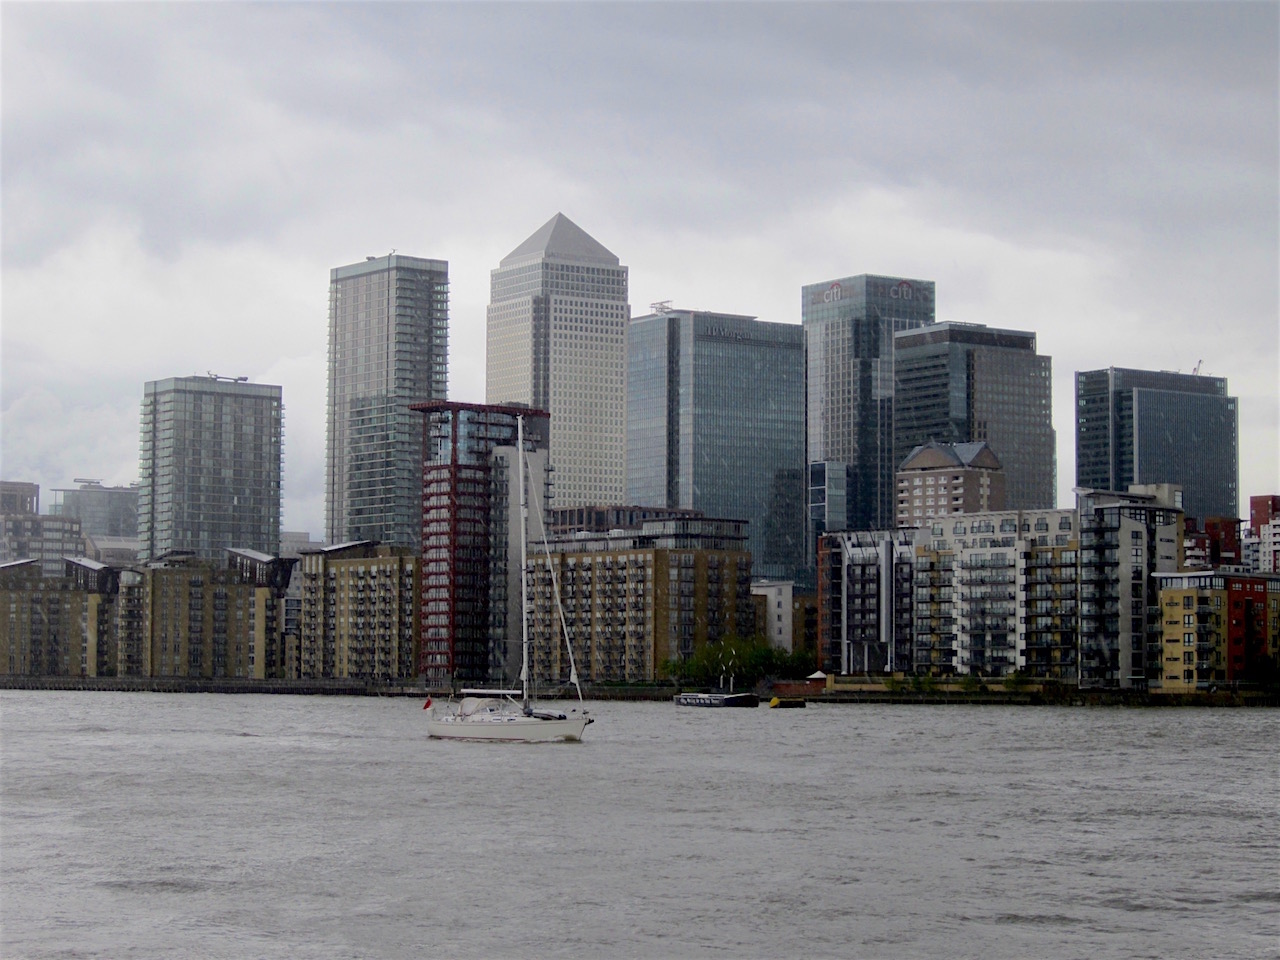 Canary Wharf from Rotherhithe, London SE16, on a rainy May 11, 2013 (Photo: Andy Worthington).